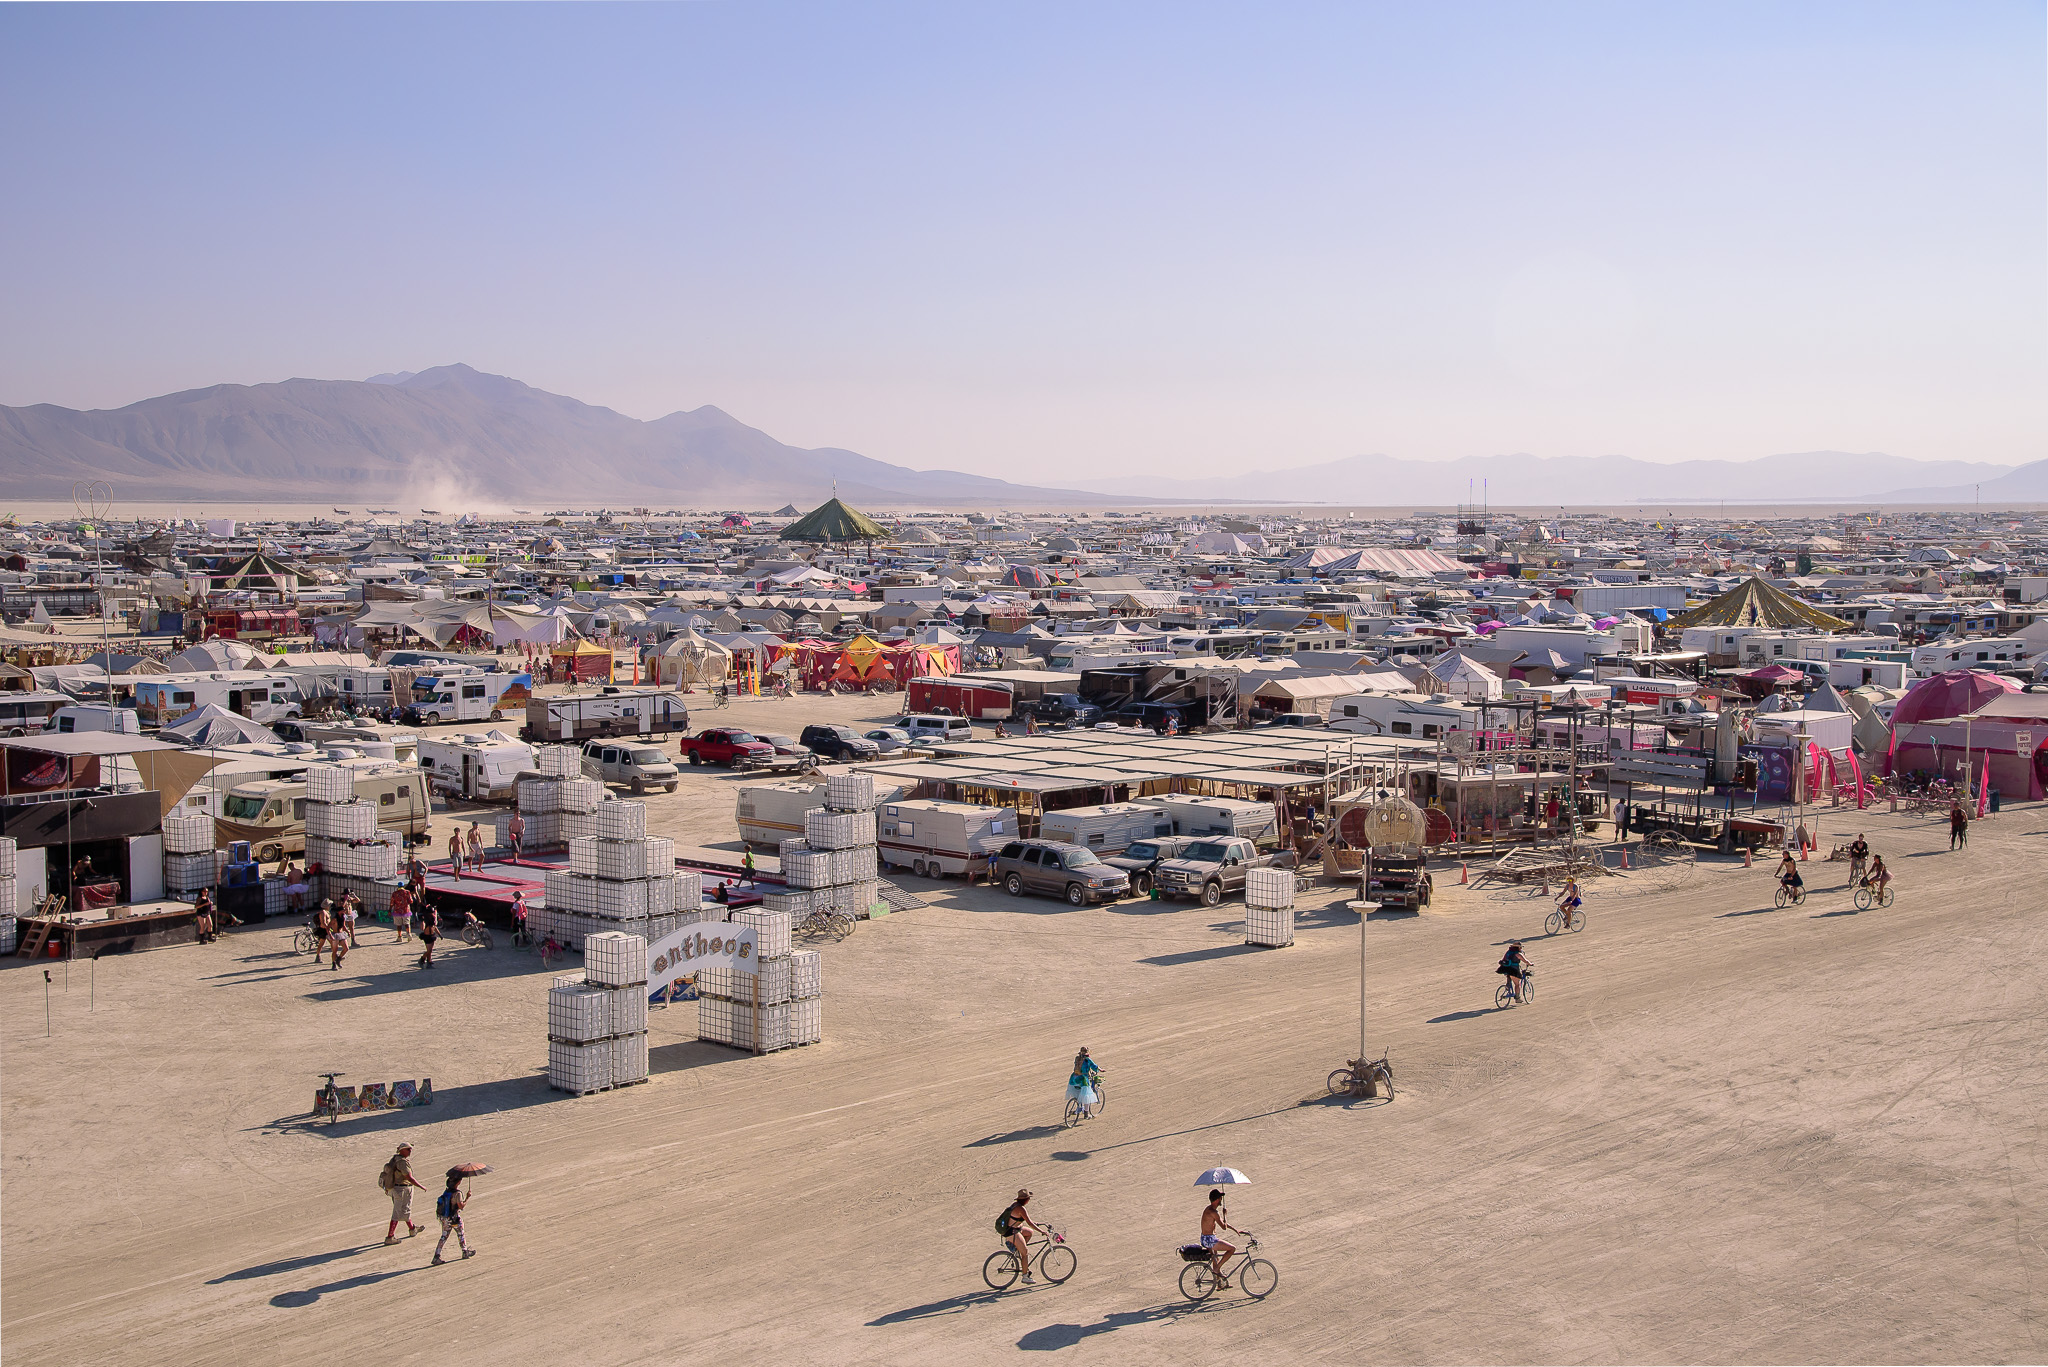 View from atop The Lodestar sculpture. 35-40ft above the playa really shows a whole new world. Black Rock City, NV.